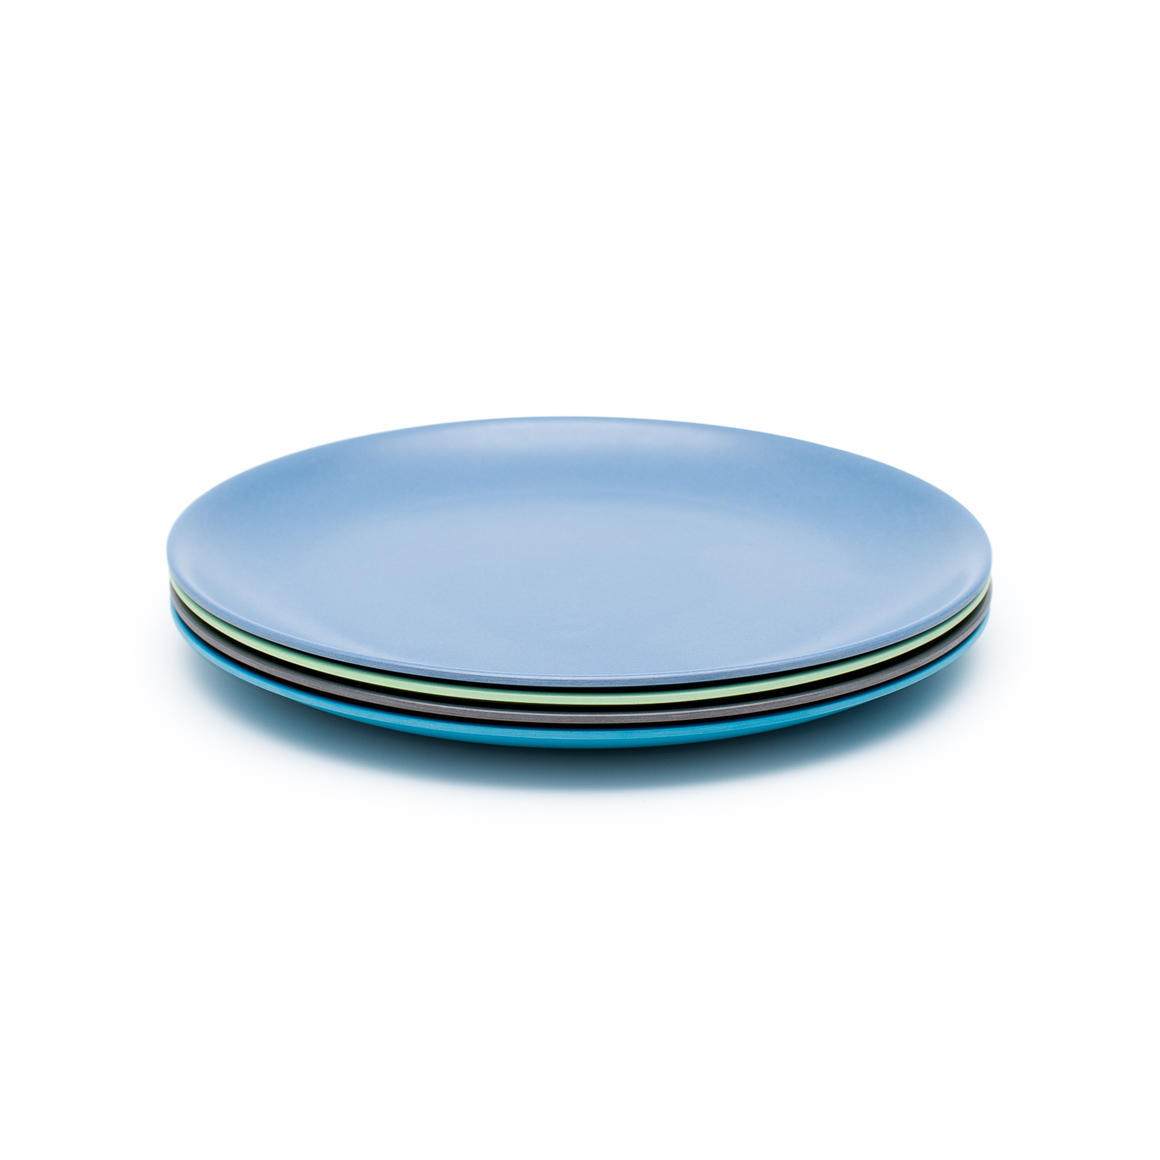 Bamboo 4 Pack Of Plates 200mm - Coastal Collection   Trada Marketplace